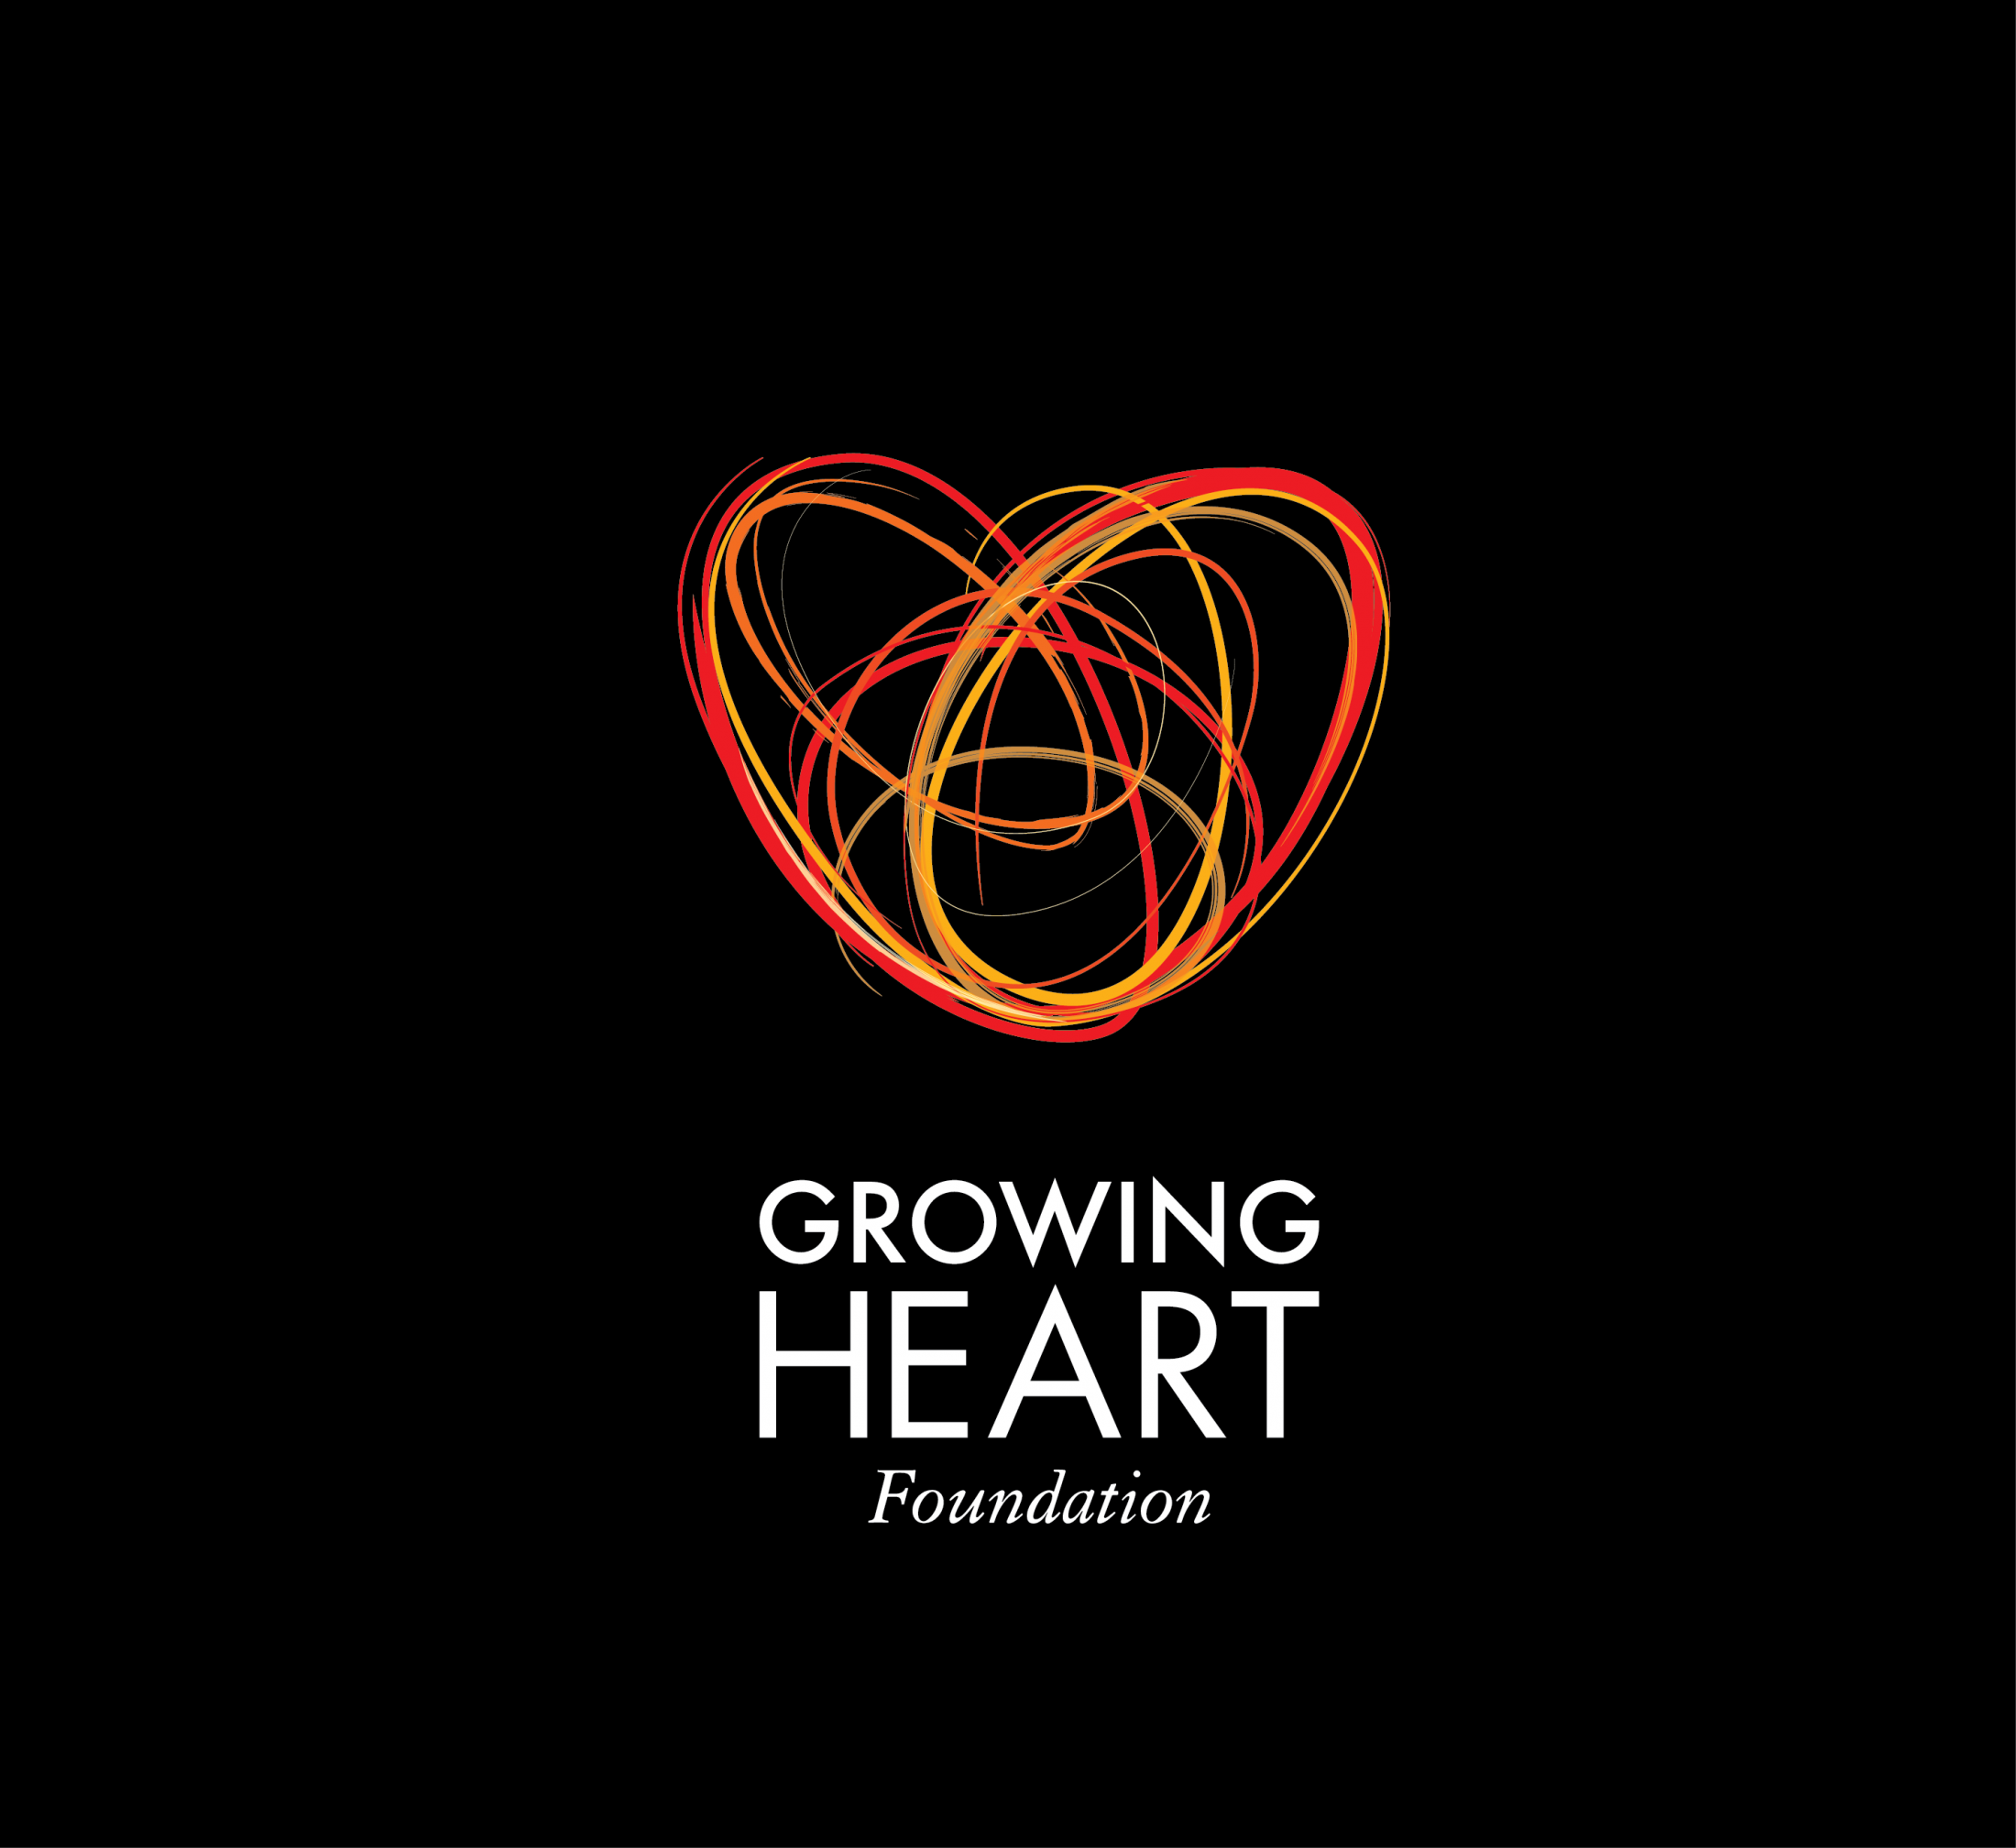 Growing Heart Foundation